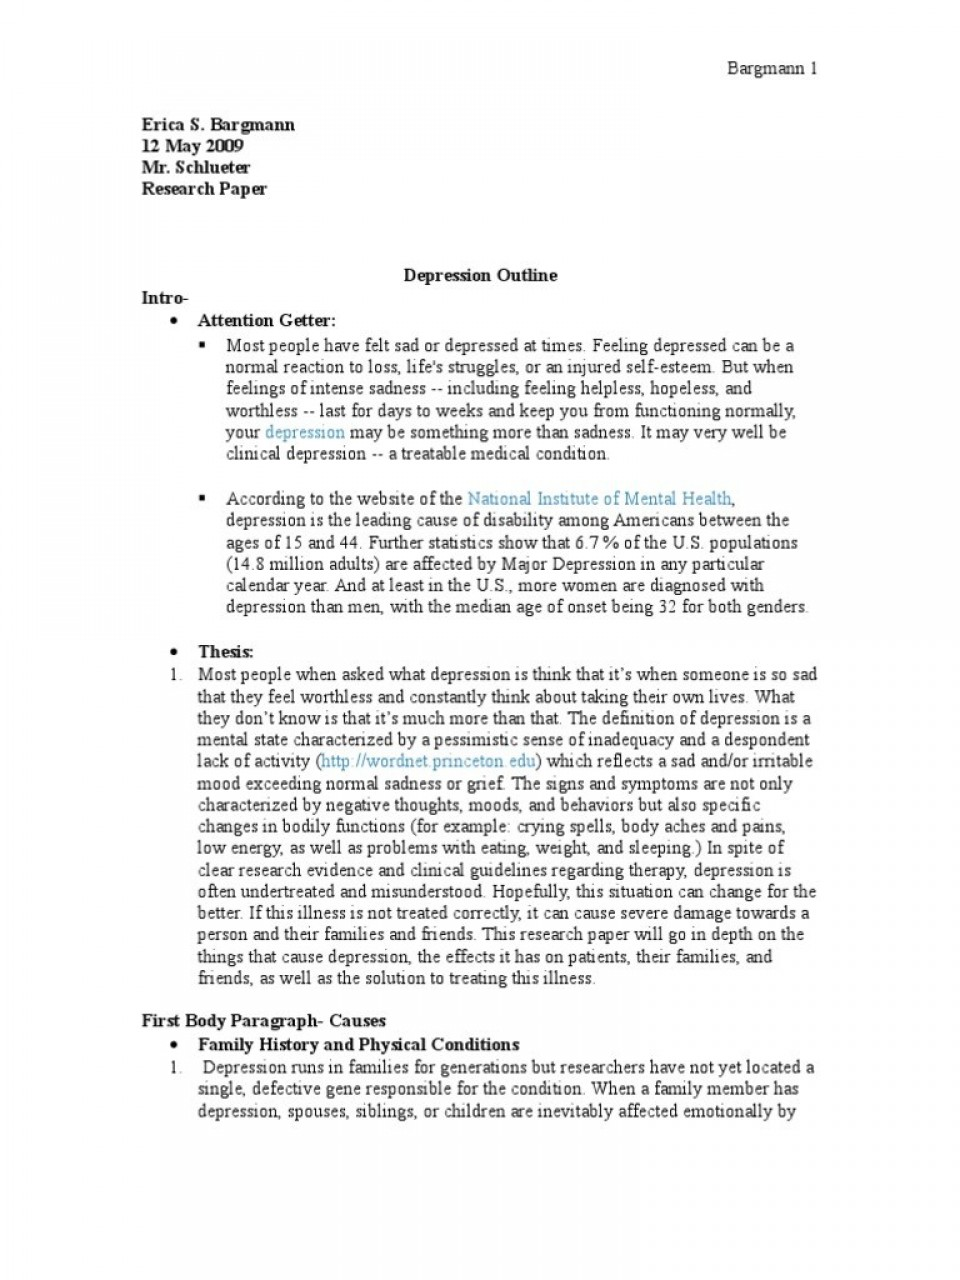 Social anxiety disorder research paper outline